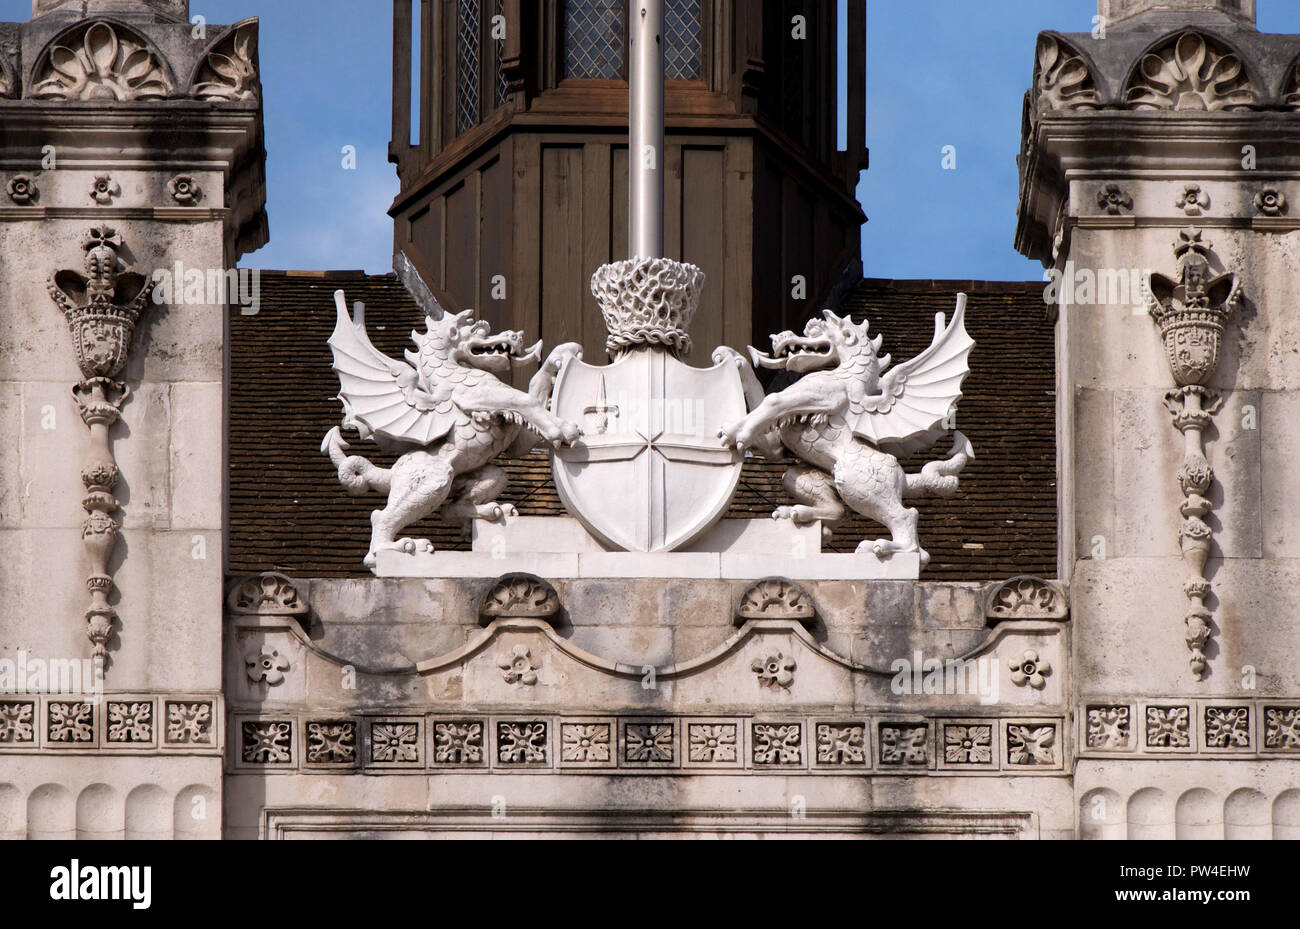 The dragon insignia on the Guild Hall in the city of london - Stock Image